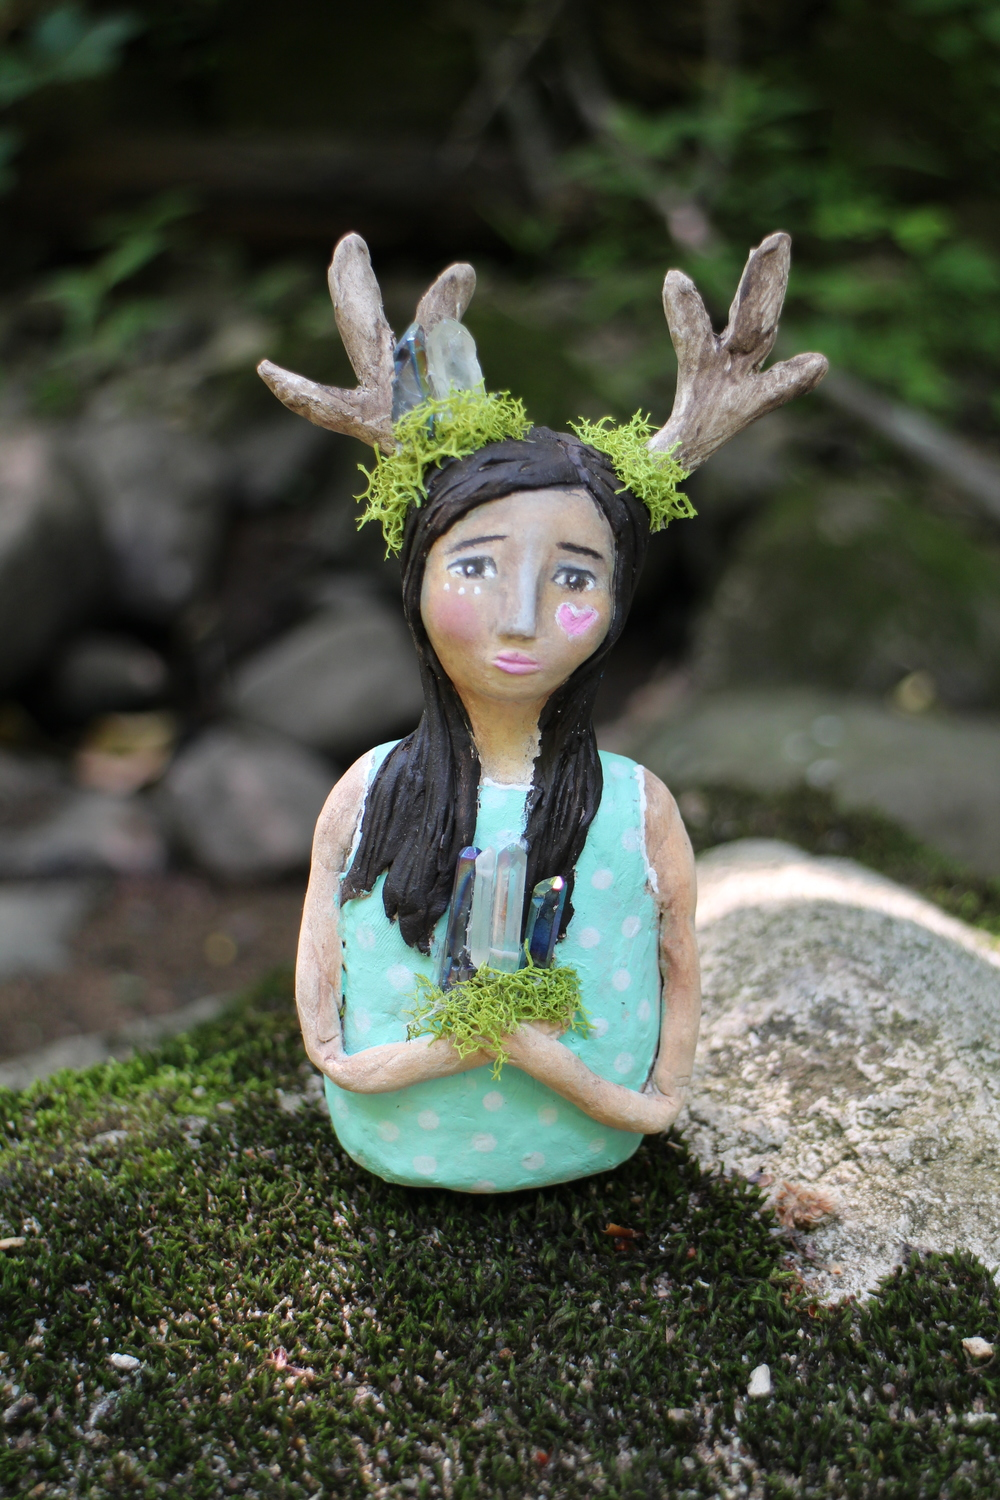 Art doll and photograph by Jennifer Albin